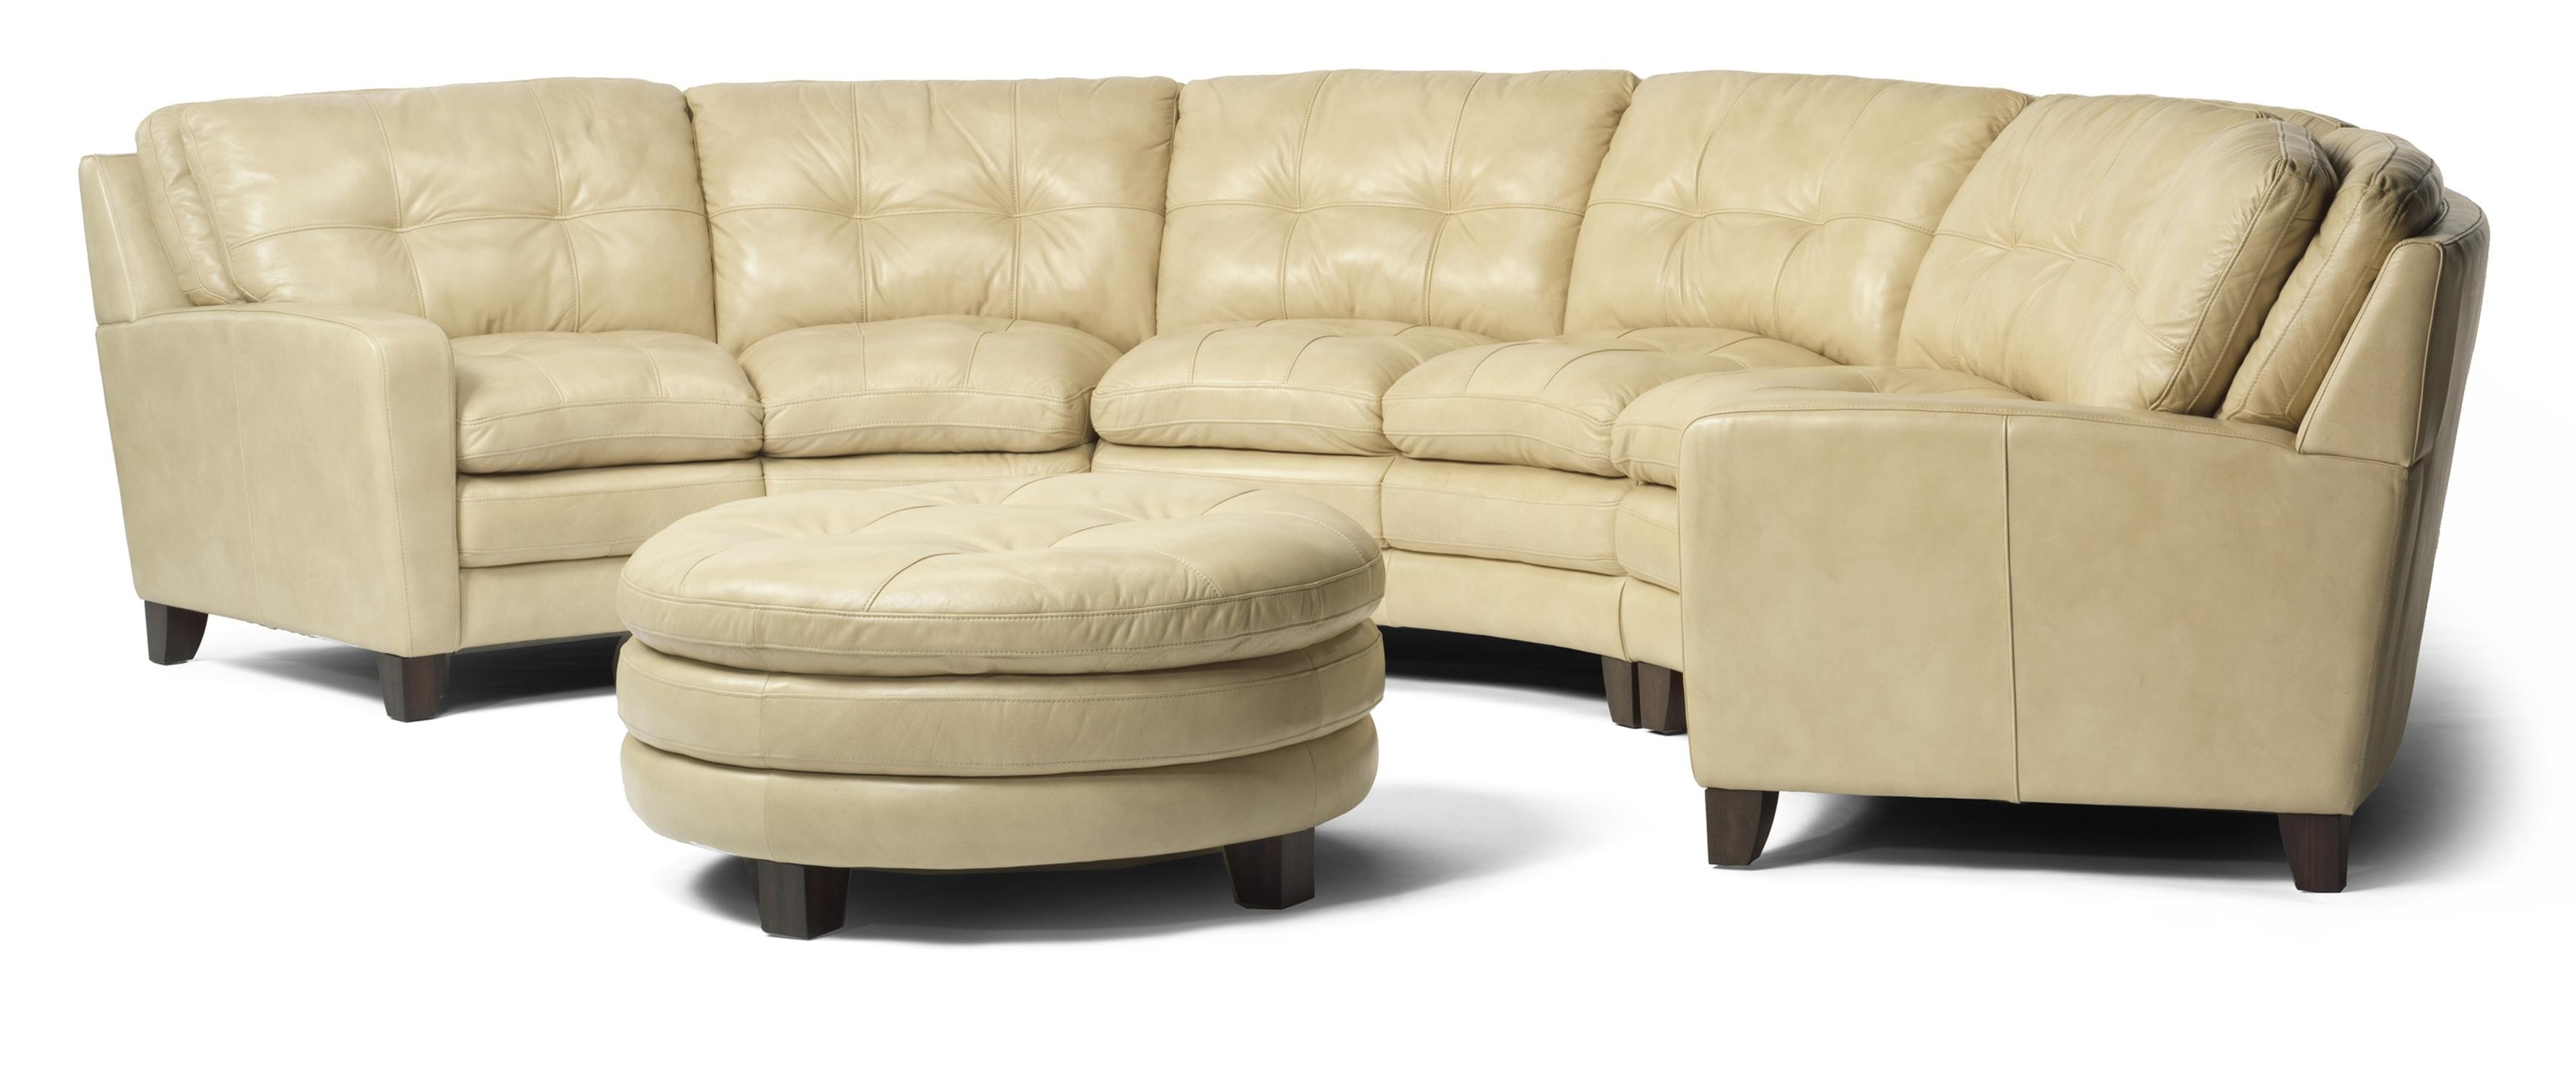 Flexsteel Latitudes – South Street Curved Sectional Sofa – Ahfa Intended For Fashionable Johnson City Tn Sectional Sofas (View 12 of 20)